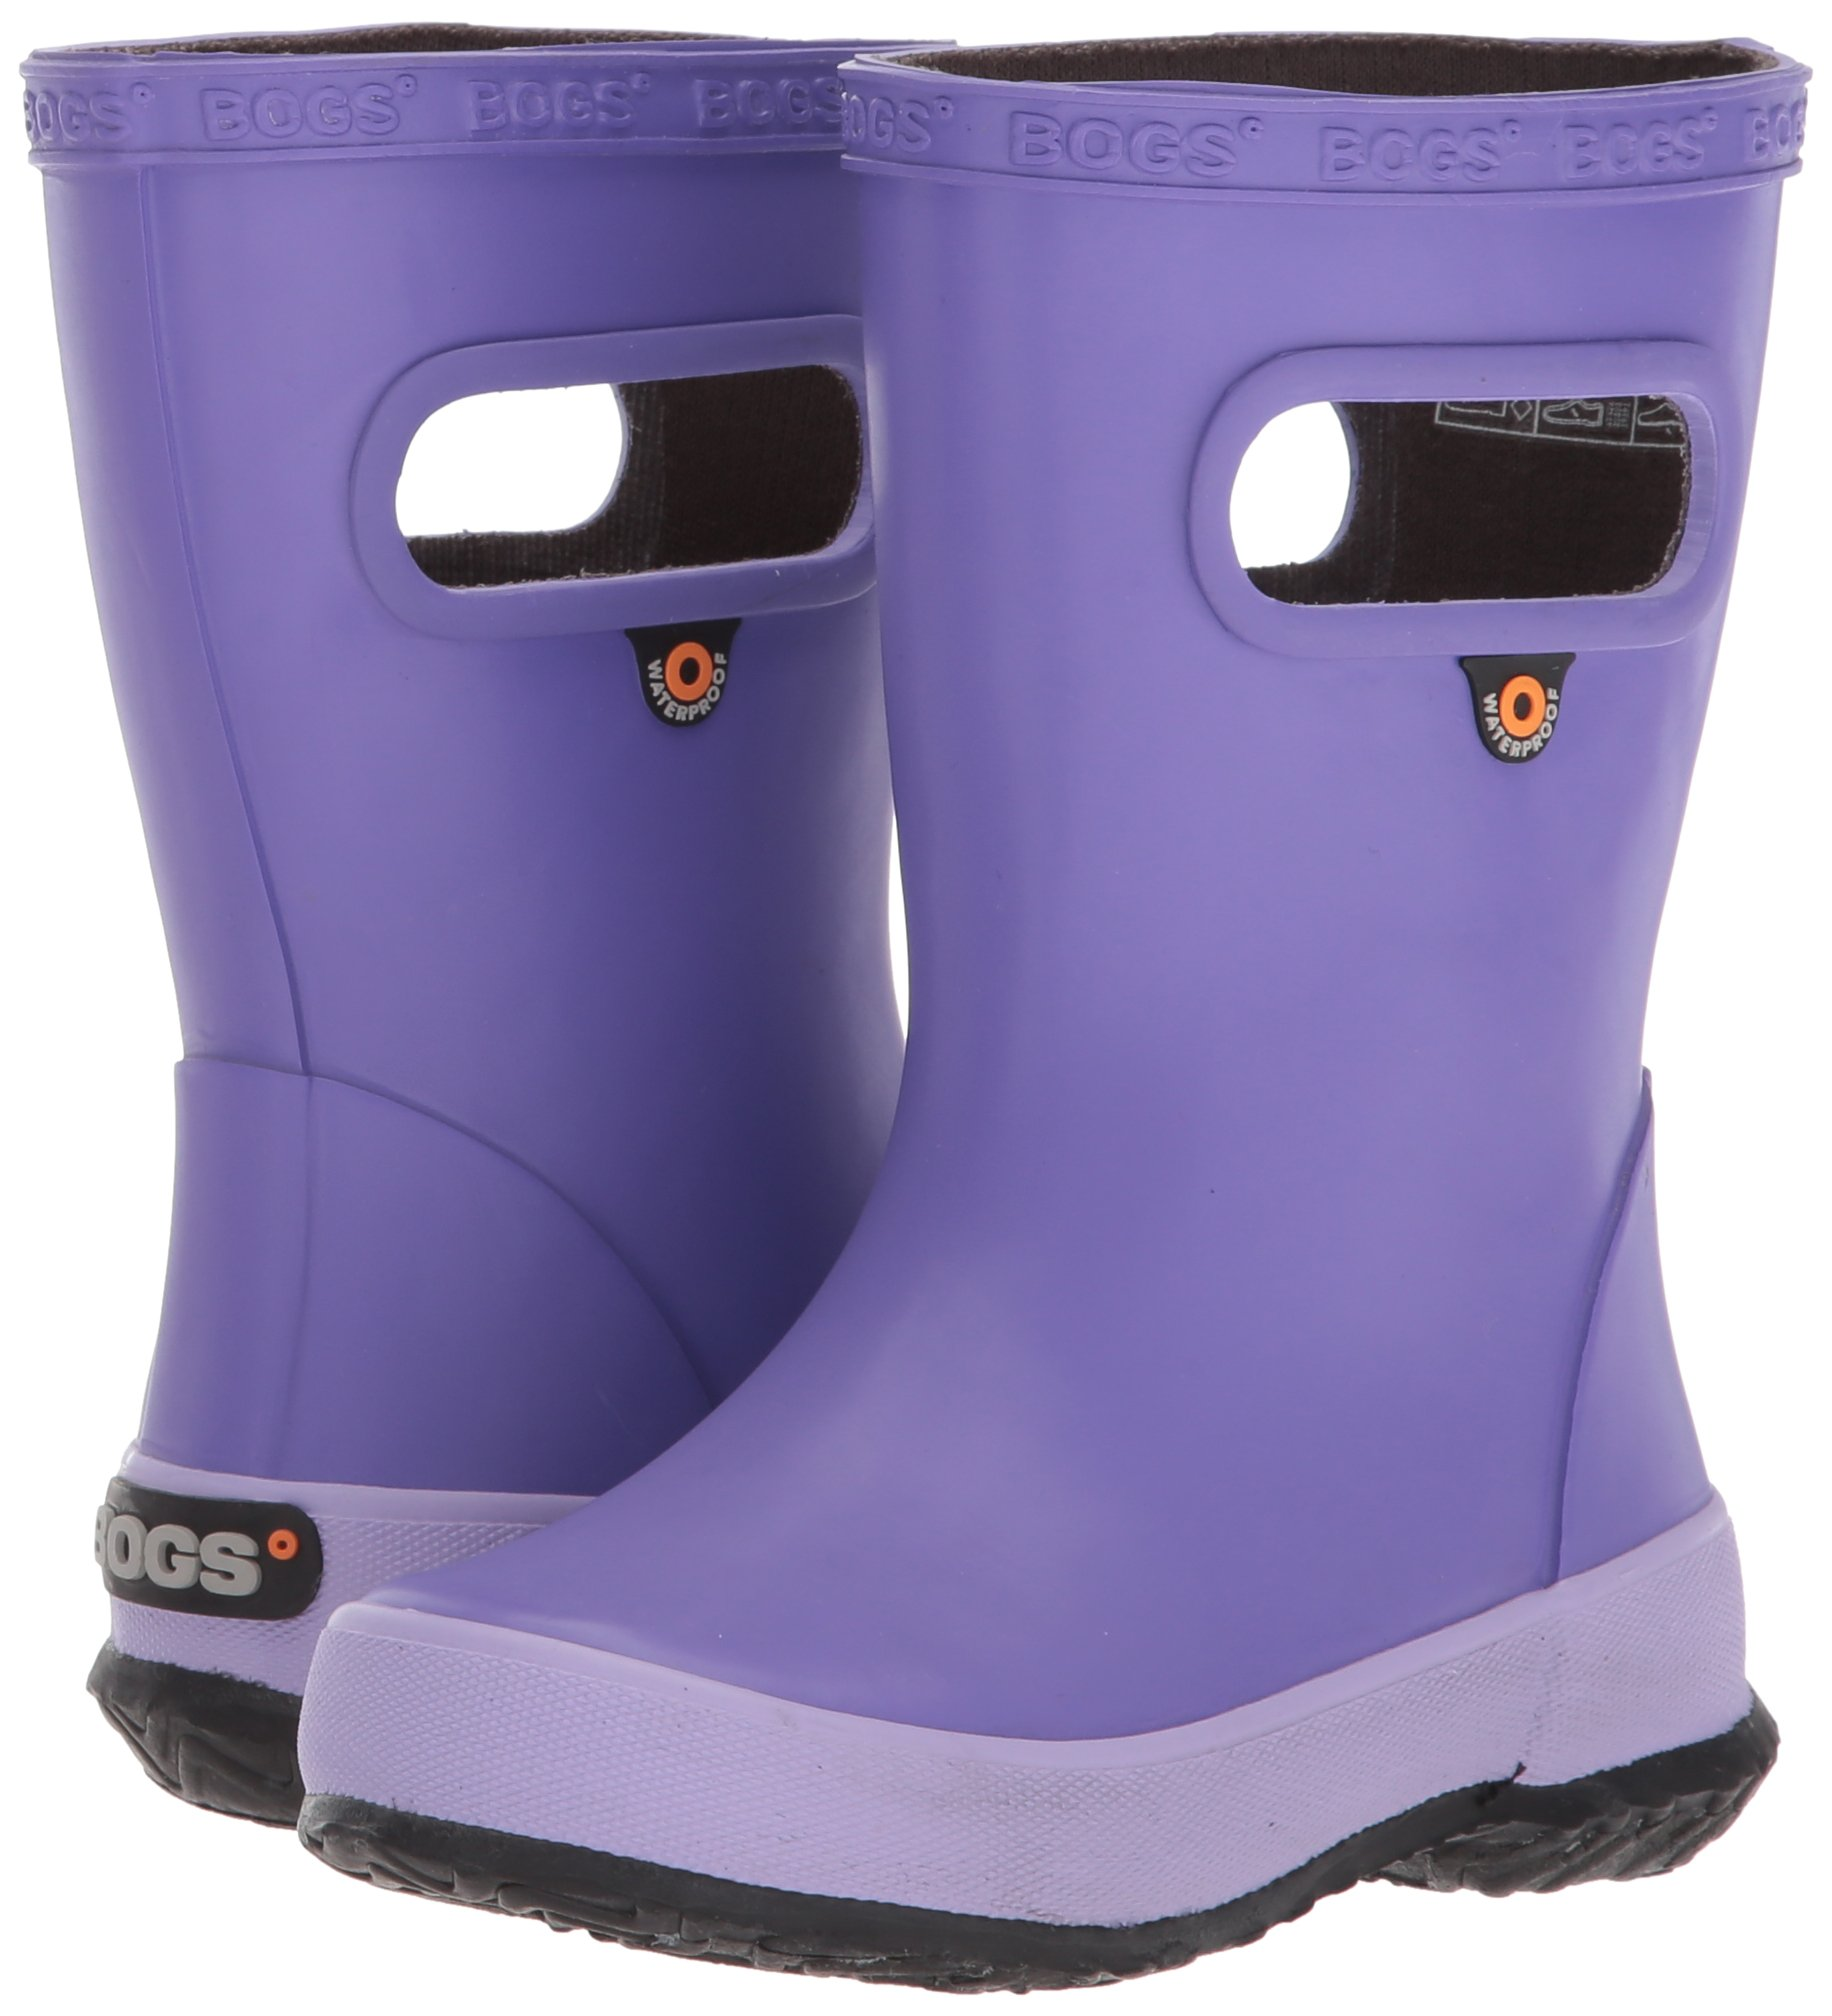 Bogs Kids' Skipper Waterproof Rubber Rain Boot for Boys and Girls,Solid Violet,11 M US Little Kid by Bogs (Image #6)